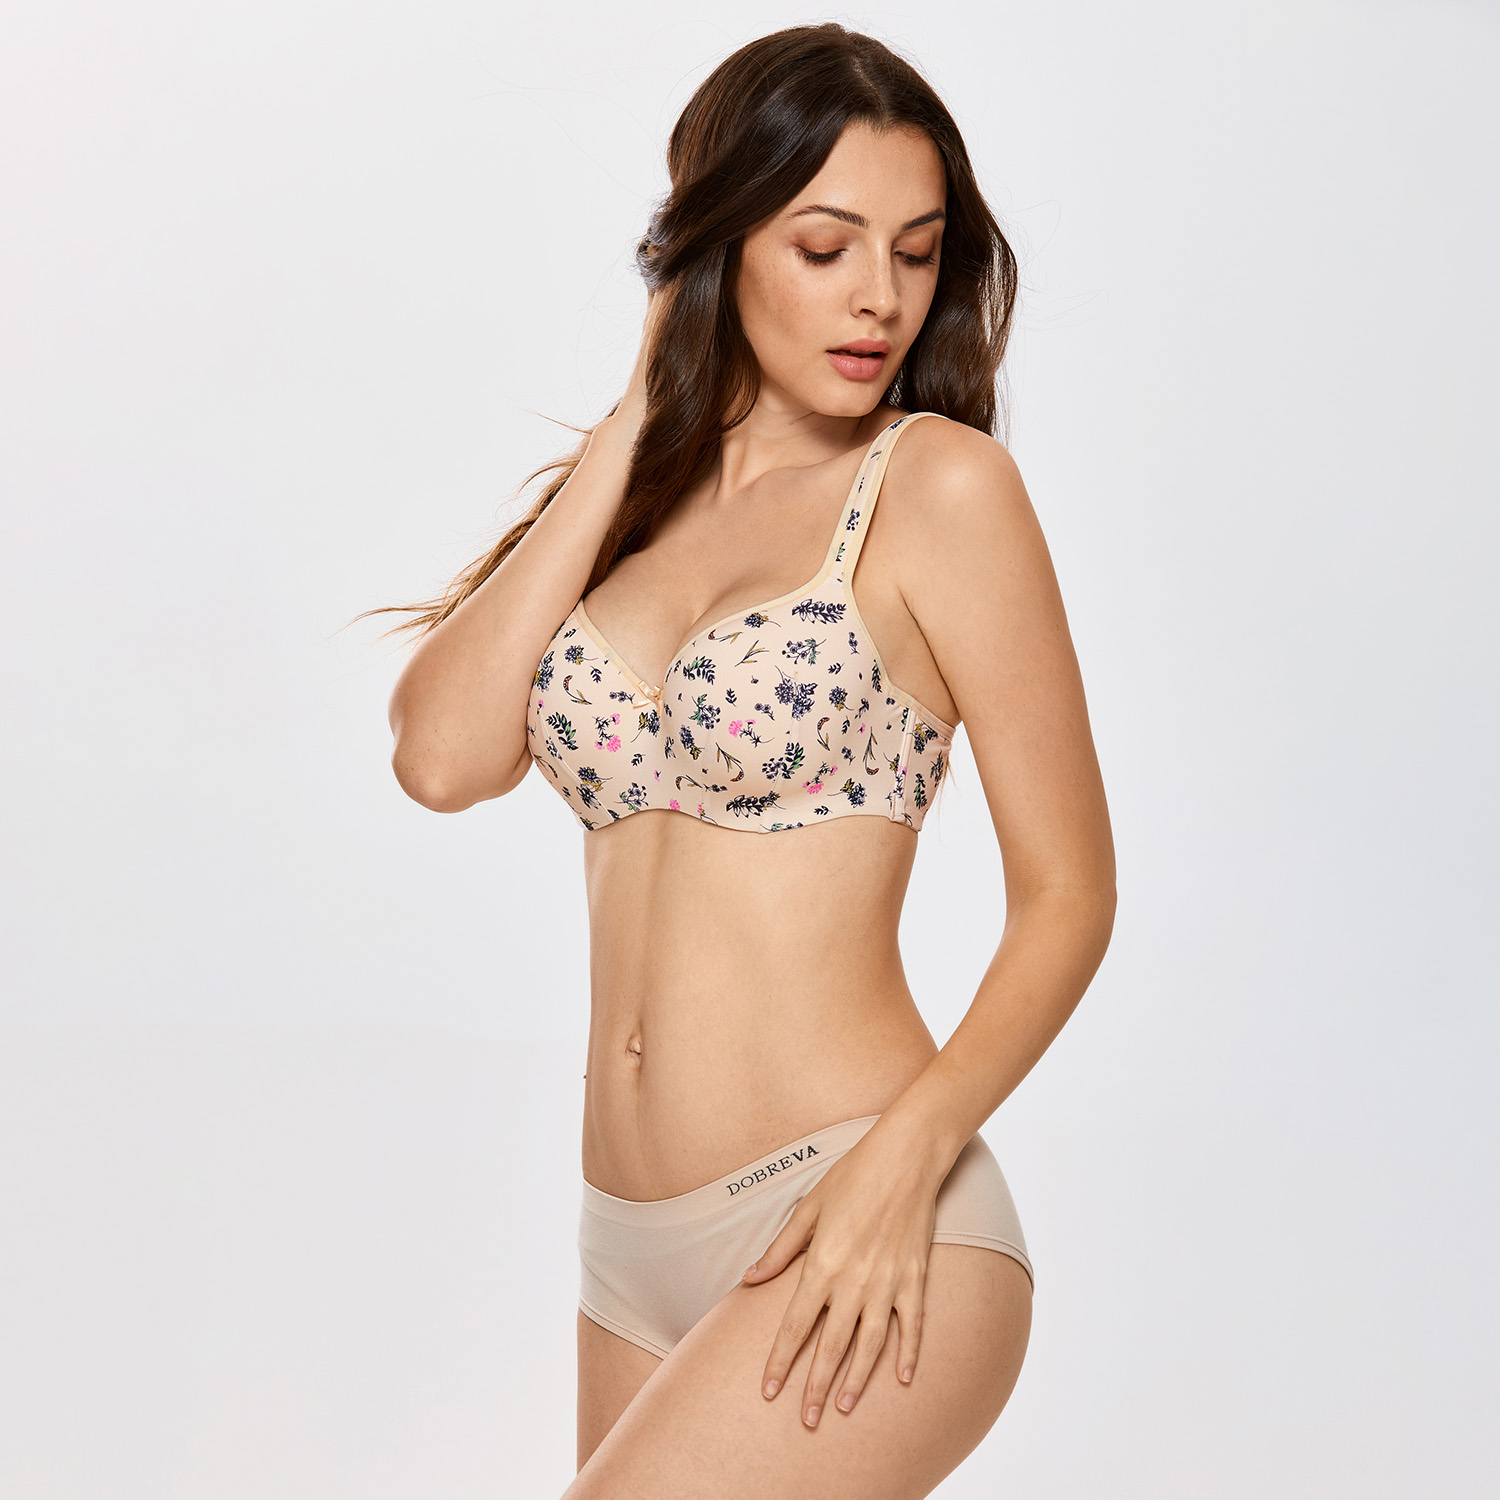 DELIMIRA Women Balconette Bra Full Figure Underwire Lightly Lined Smooth Contour